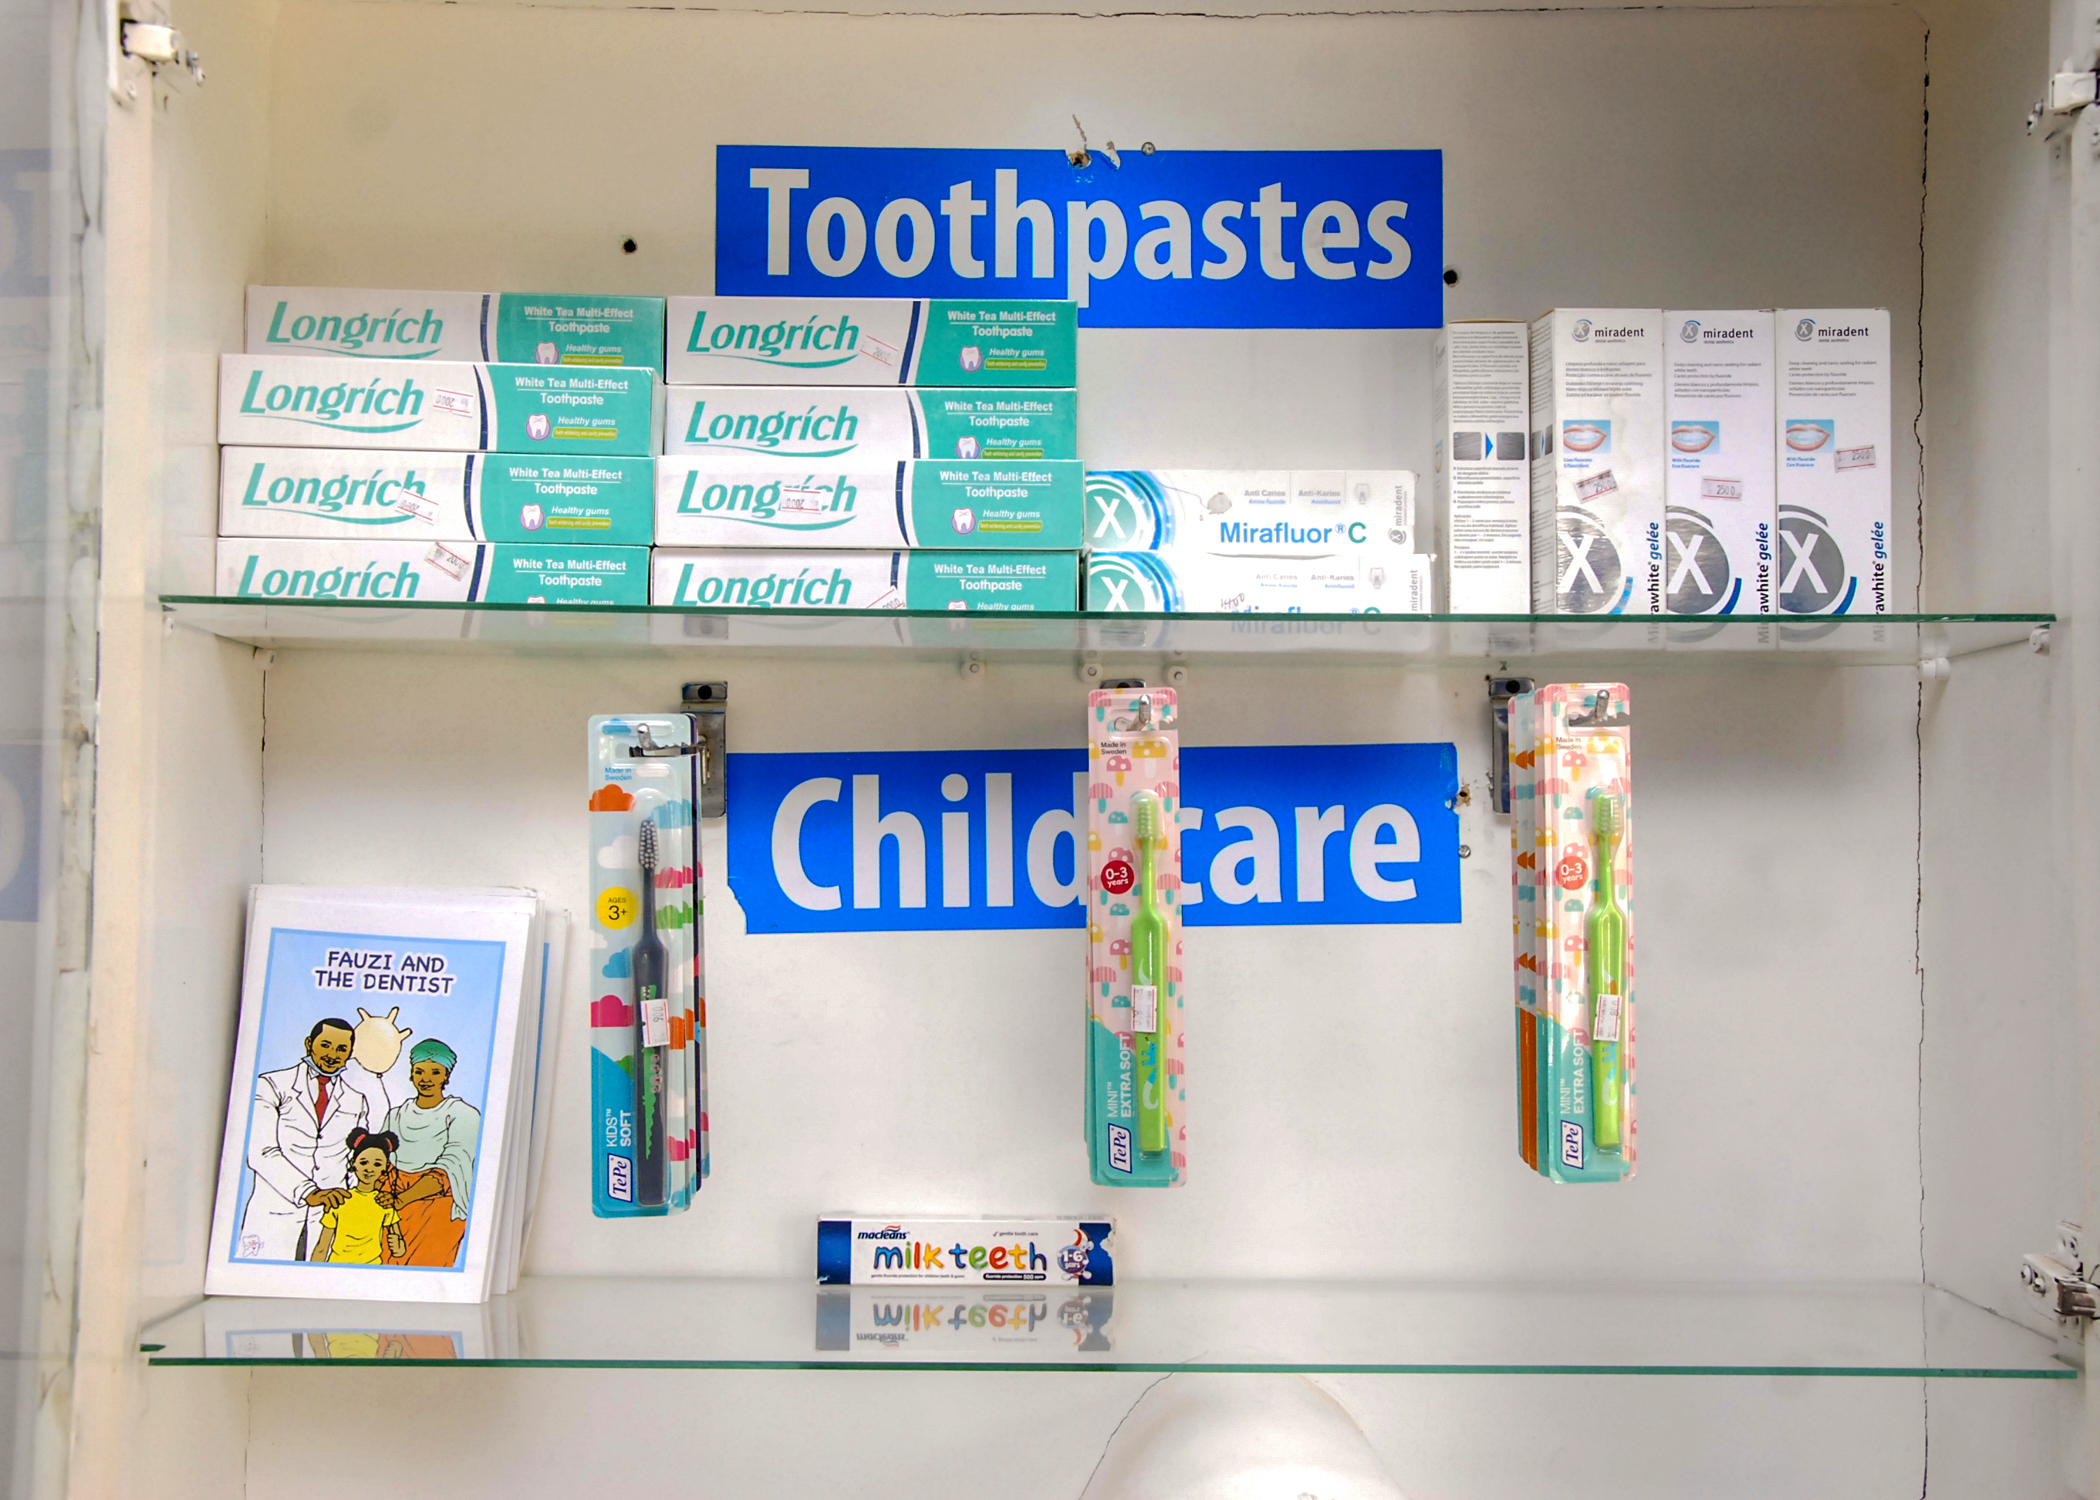 Childcare Toothpastes